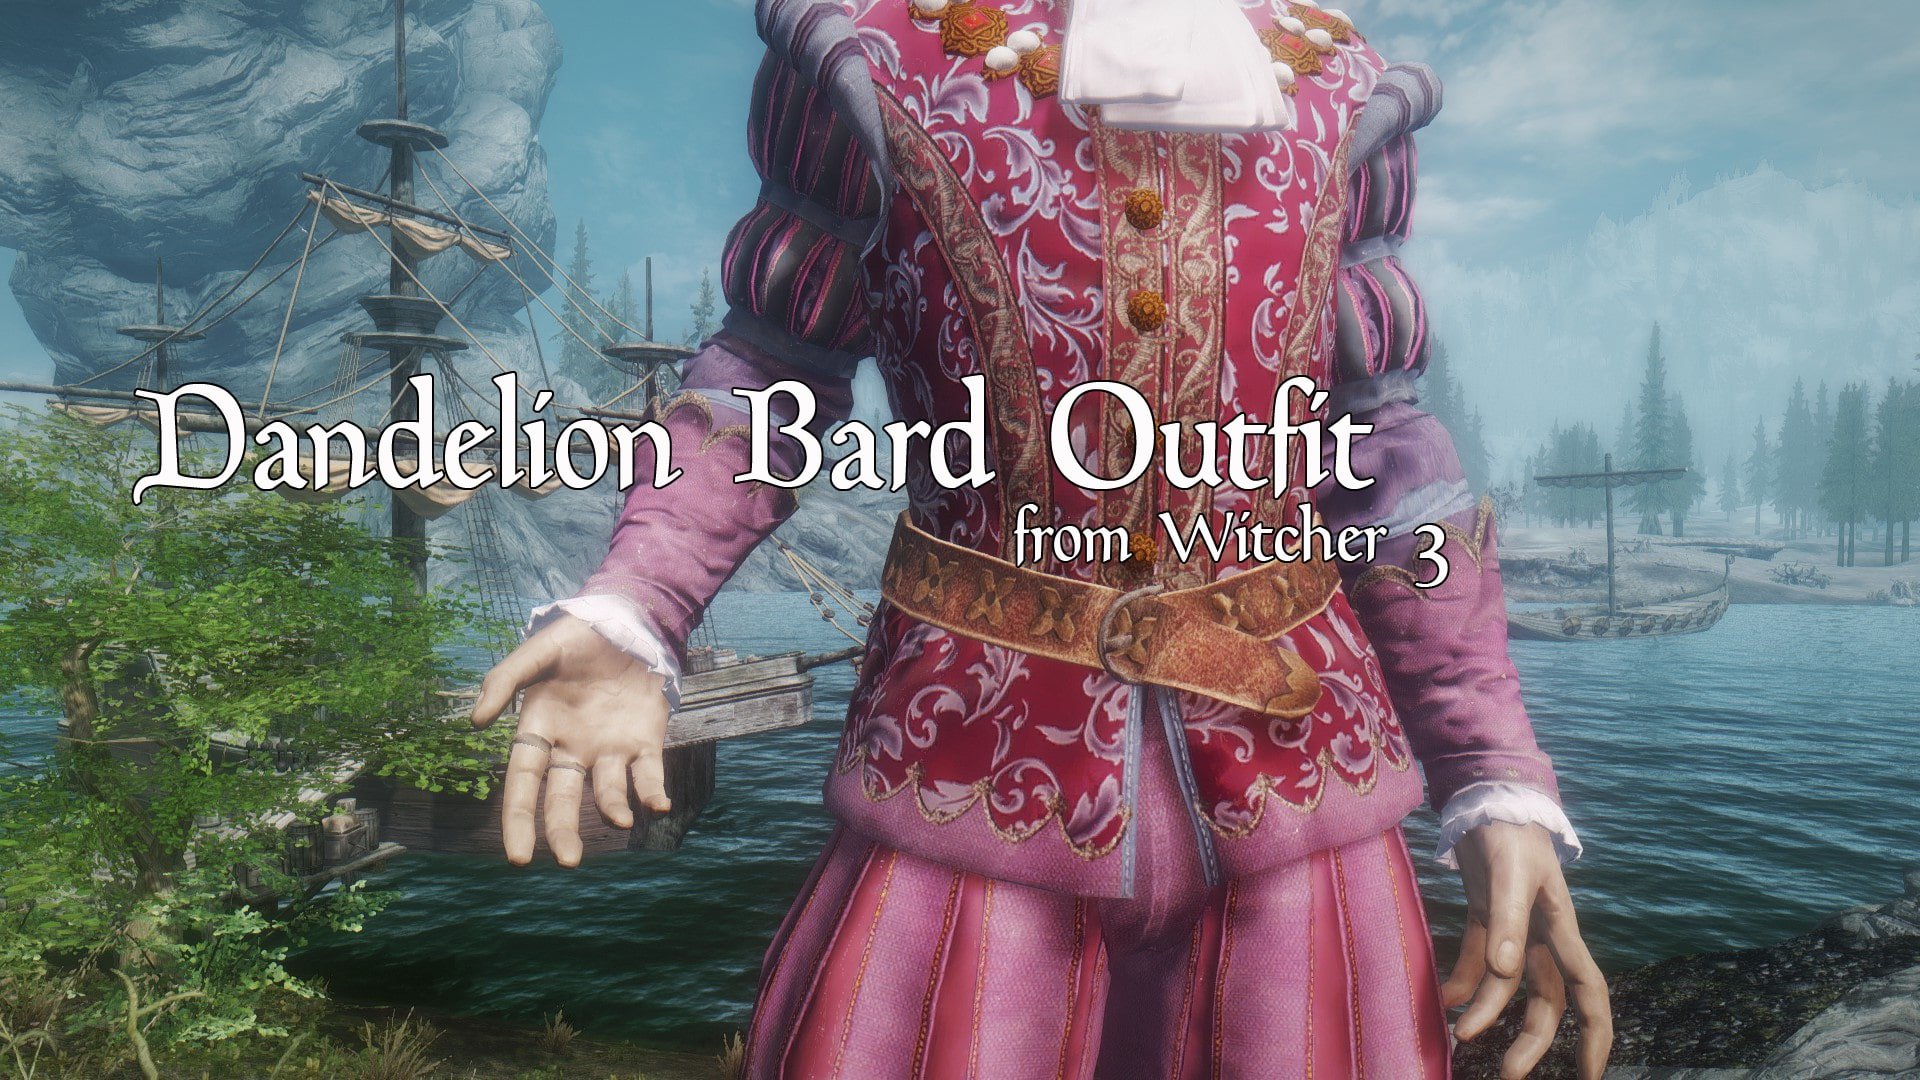 Witcher 3 Dandelion Bard Outfit | Наряд Лютика из Ведьмака 3